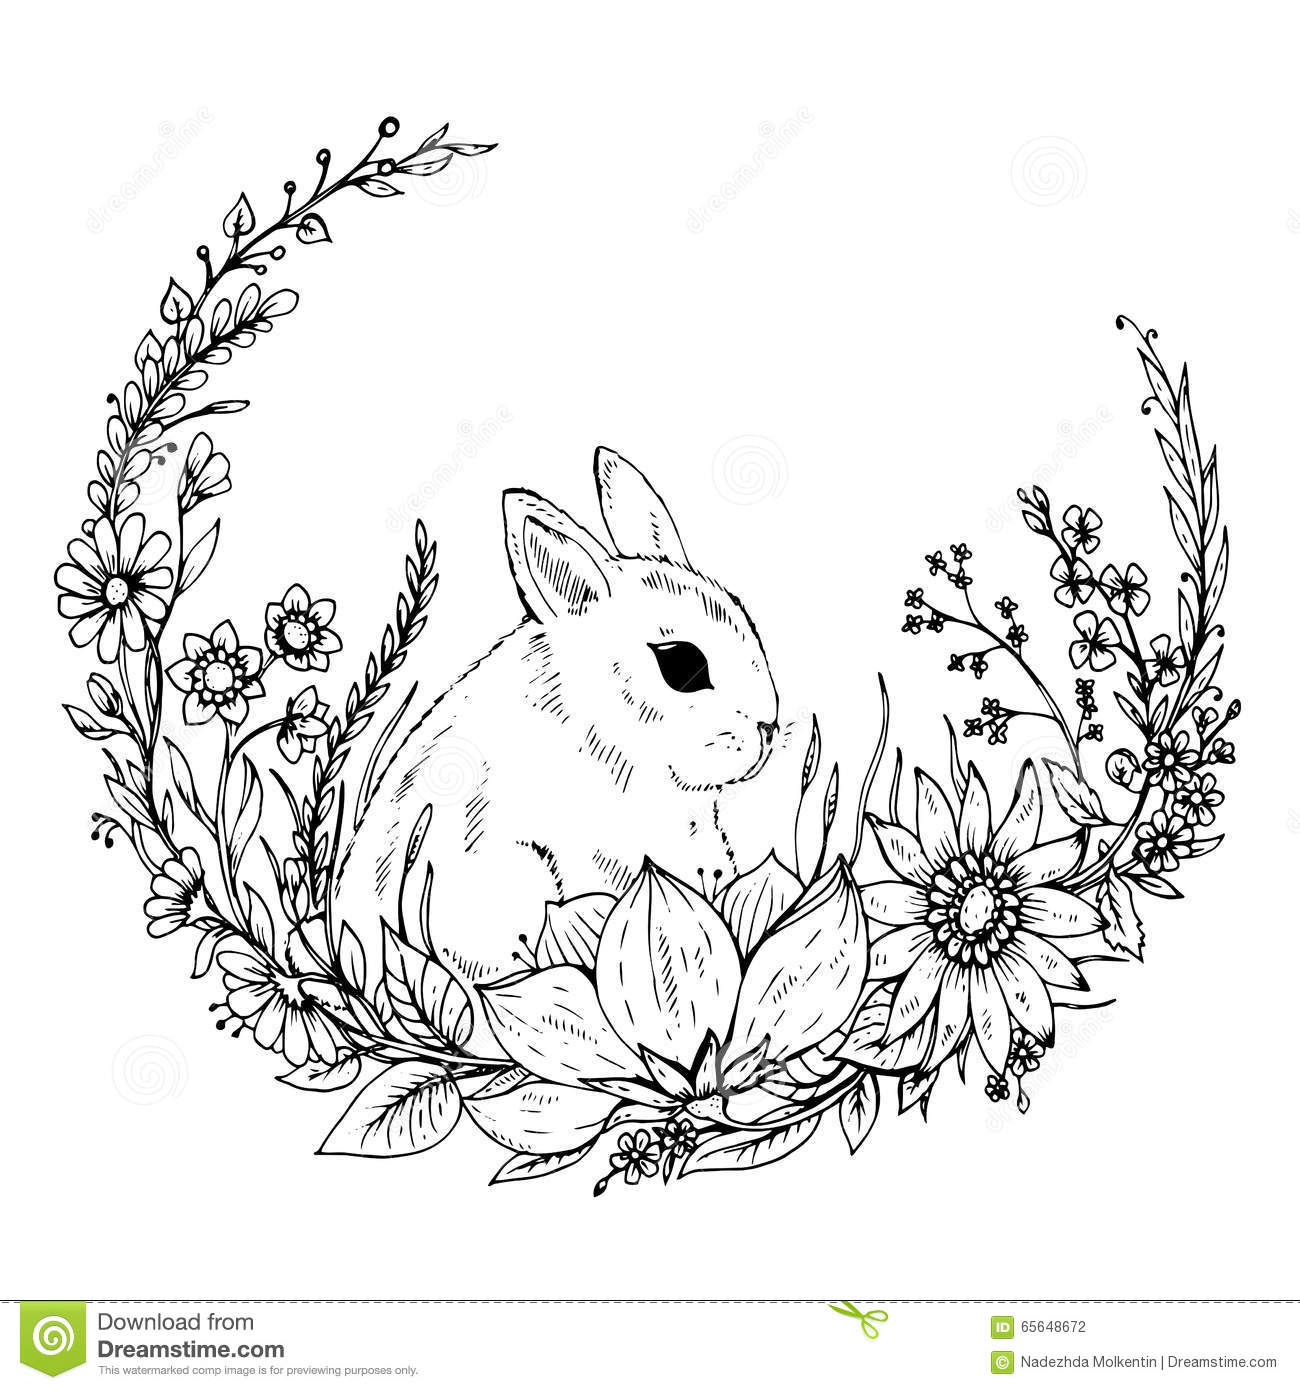 Cute Flower Line Drawing : Cute hand drawn rabbit with wreath of flowers and leafs